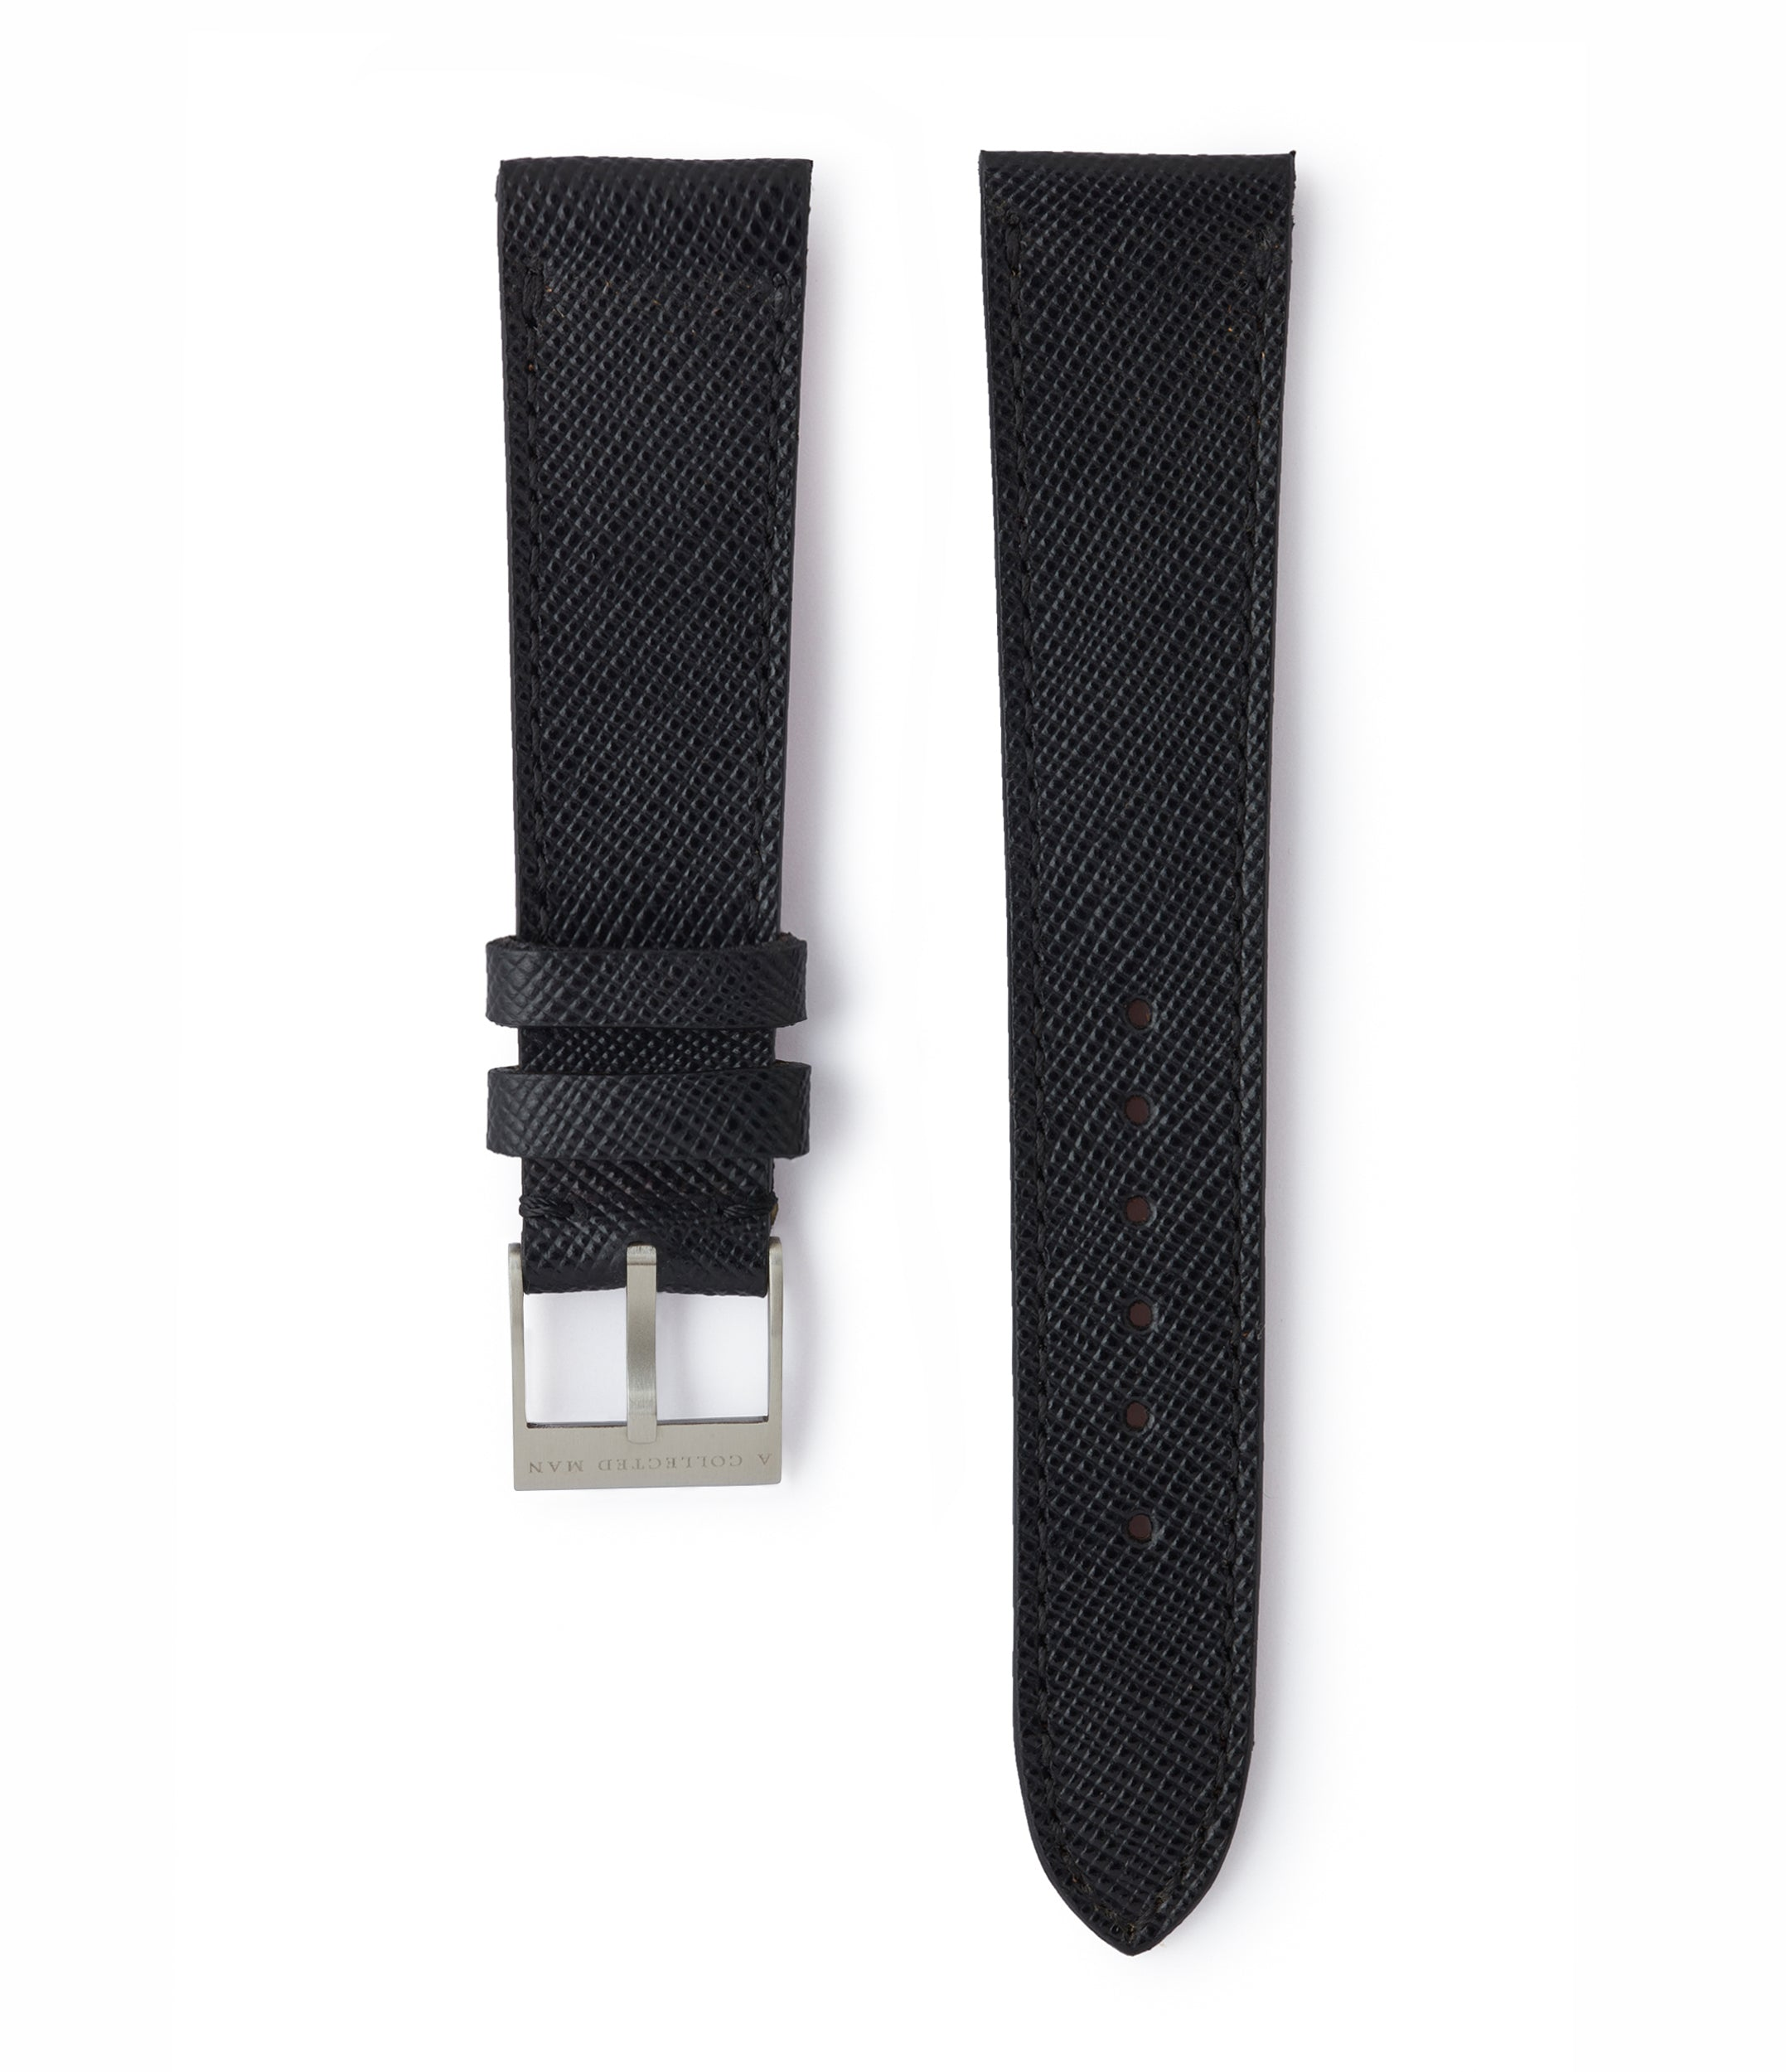 buy black saffiano leather watch strap 18mm Milano for sale order online at A Collected Man London